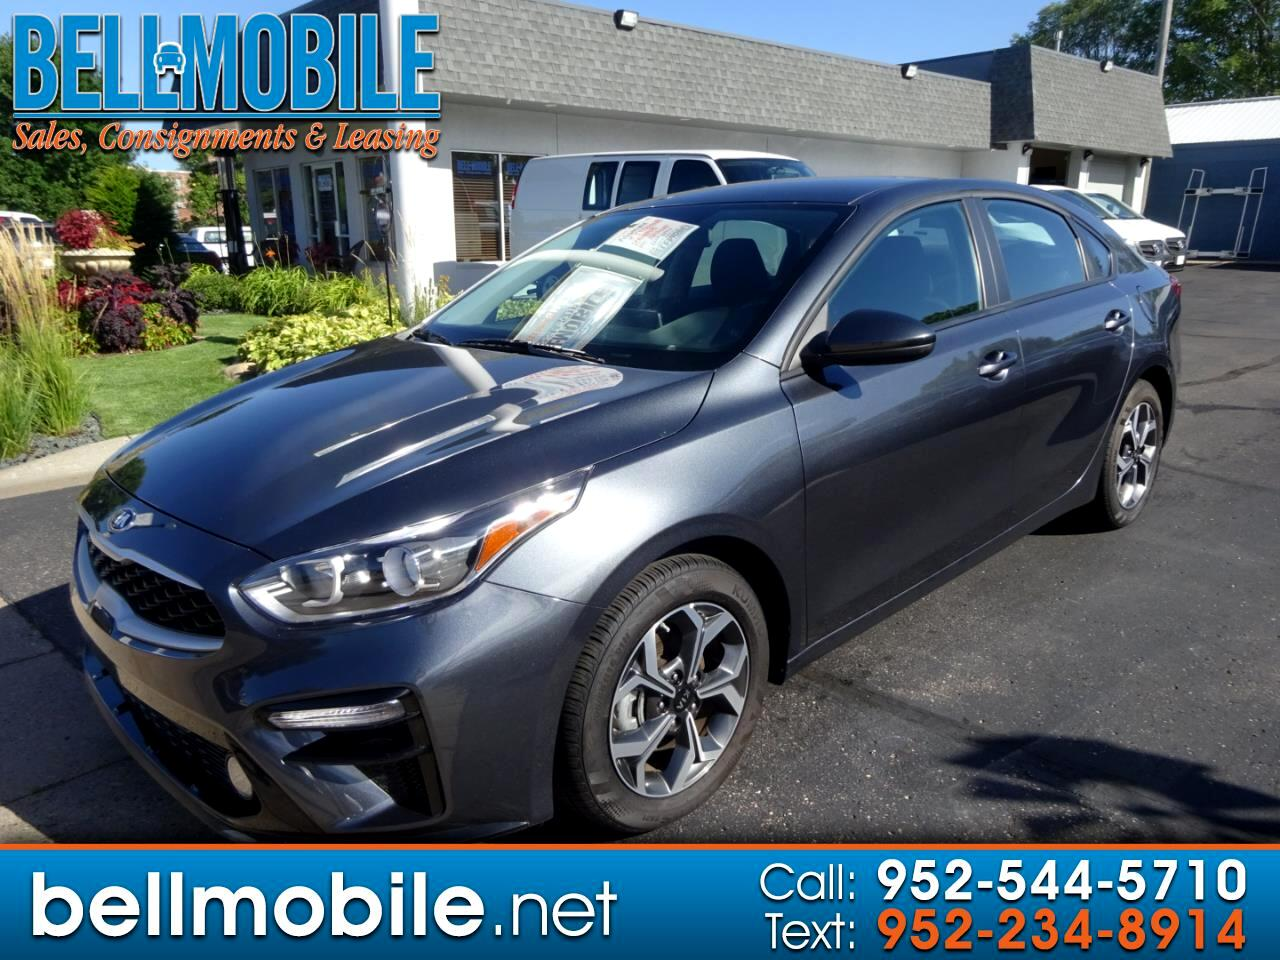 used 2020 kia forte lxs ivt for sale in hopkins mn 55343 bellmobile inc bellmobile inc